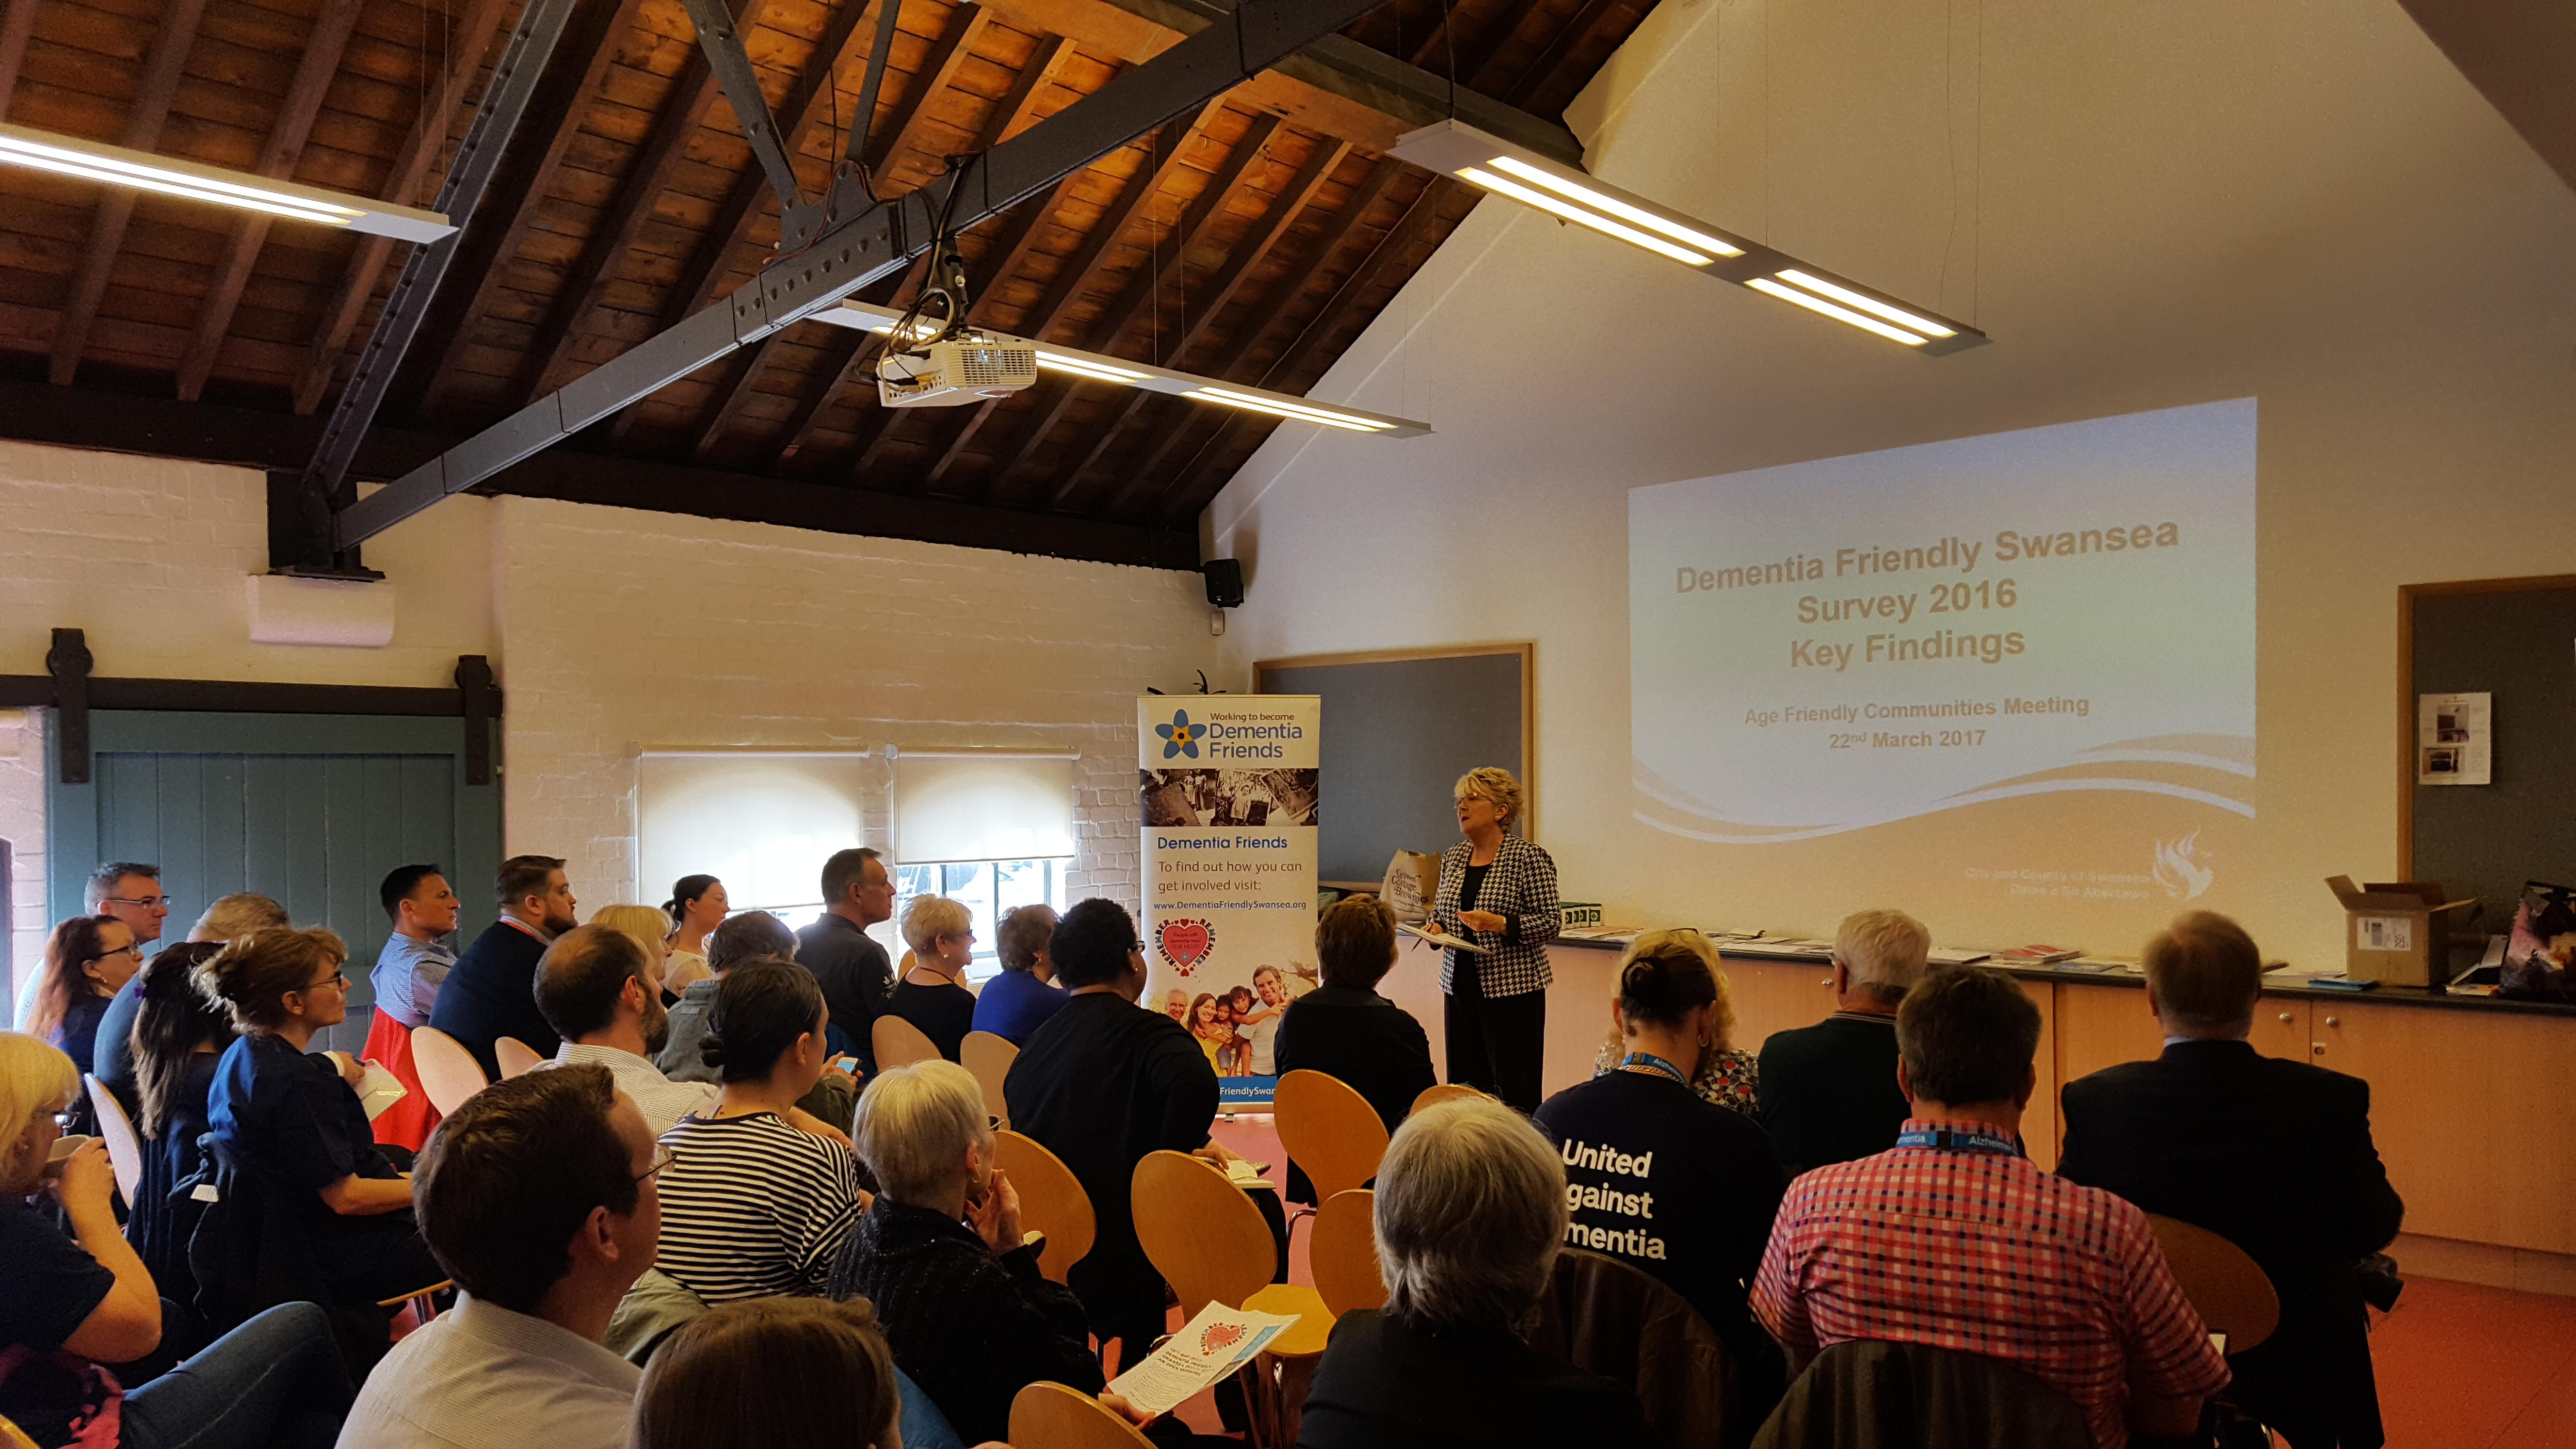 Lesley Abbott, Chair of the Dementia Friendly Swansea Forum opening the meeting